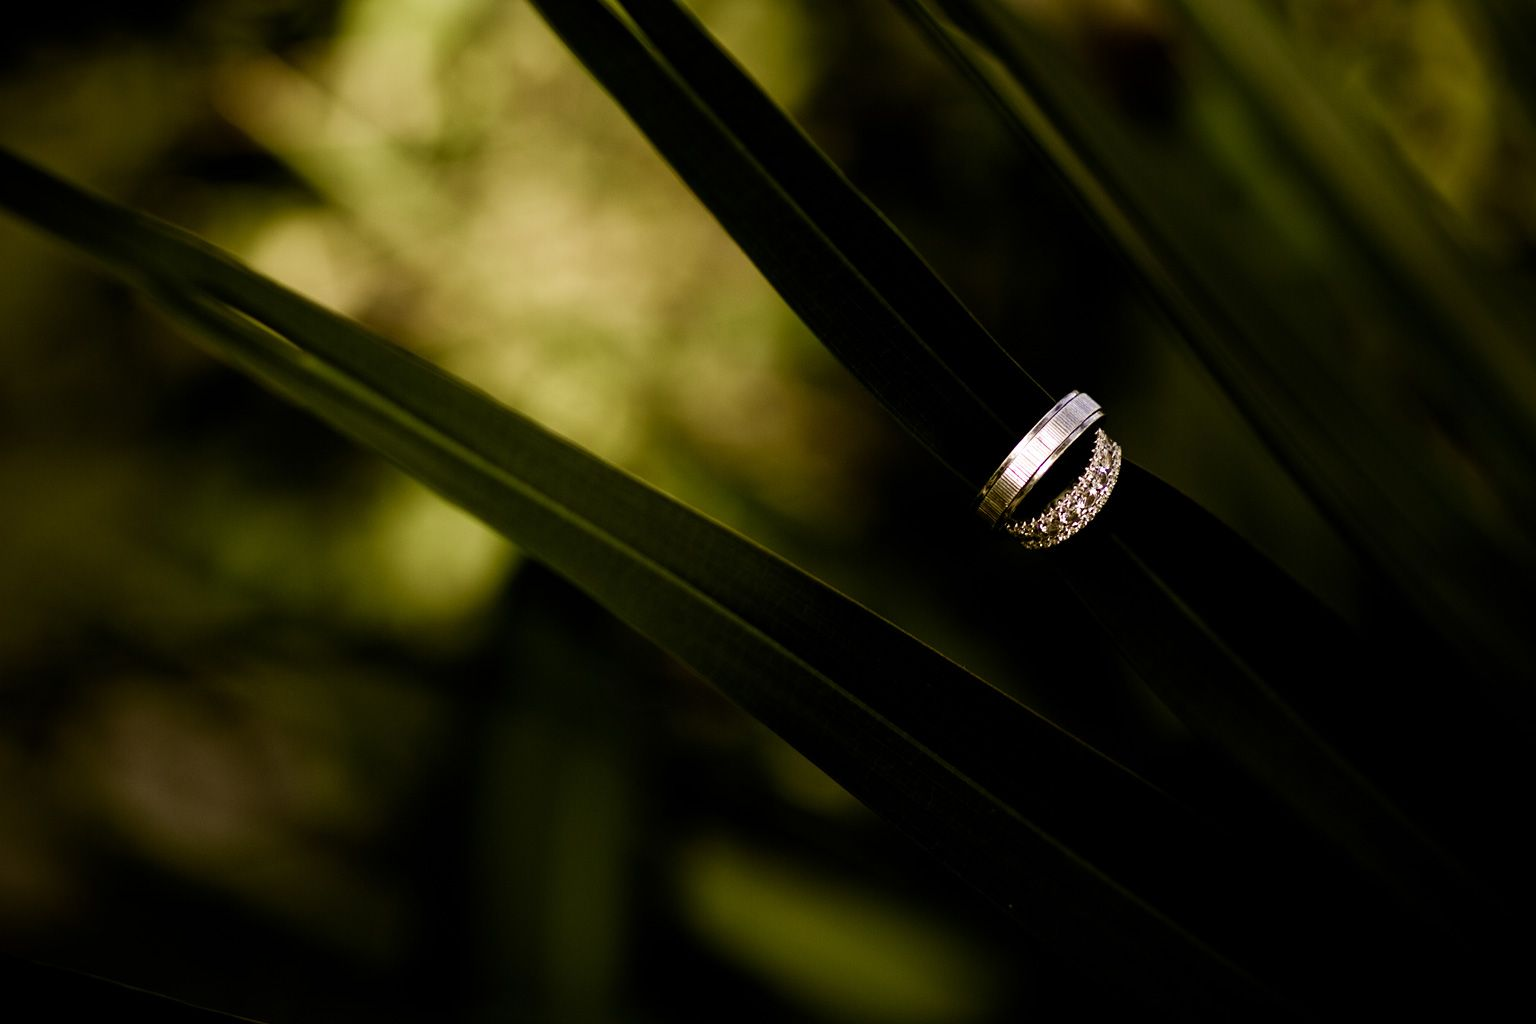 May your wedding rings represent a long never ending cycle of love and prosperity...